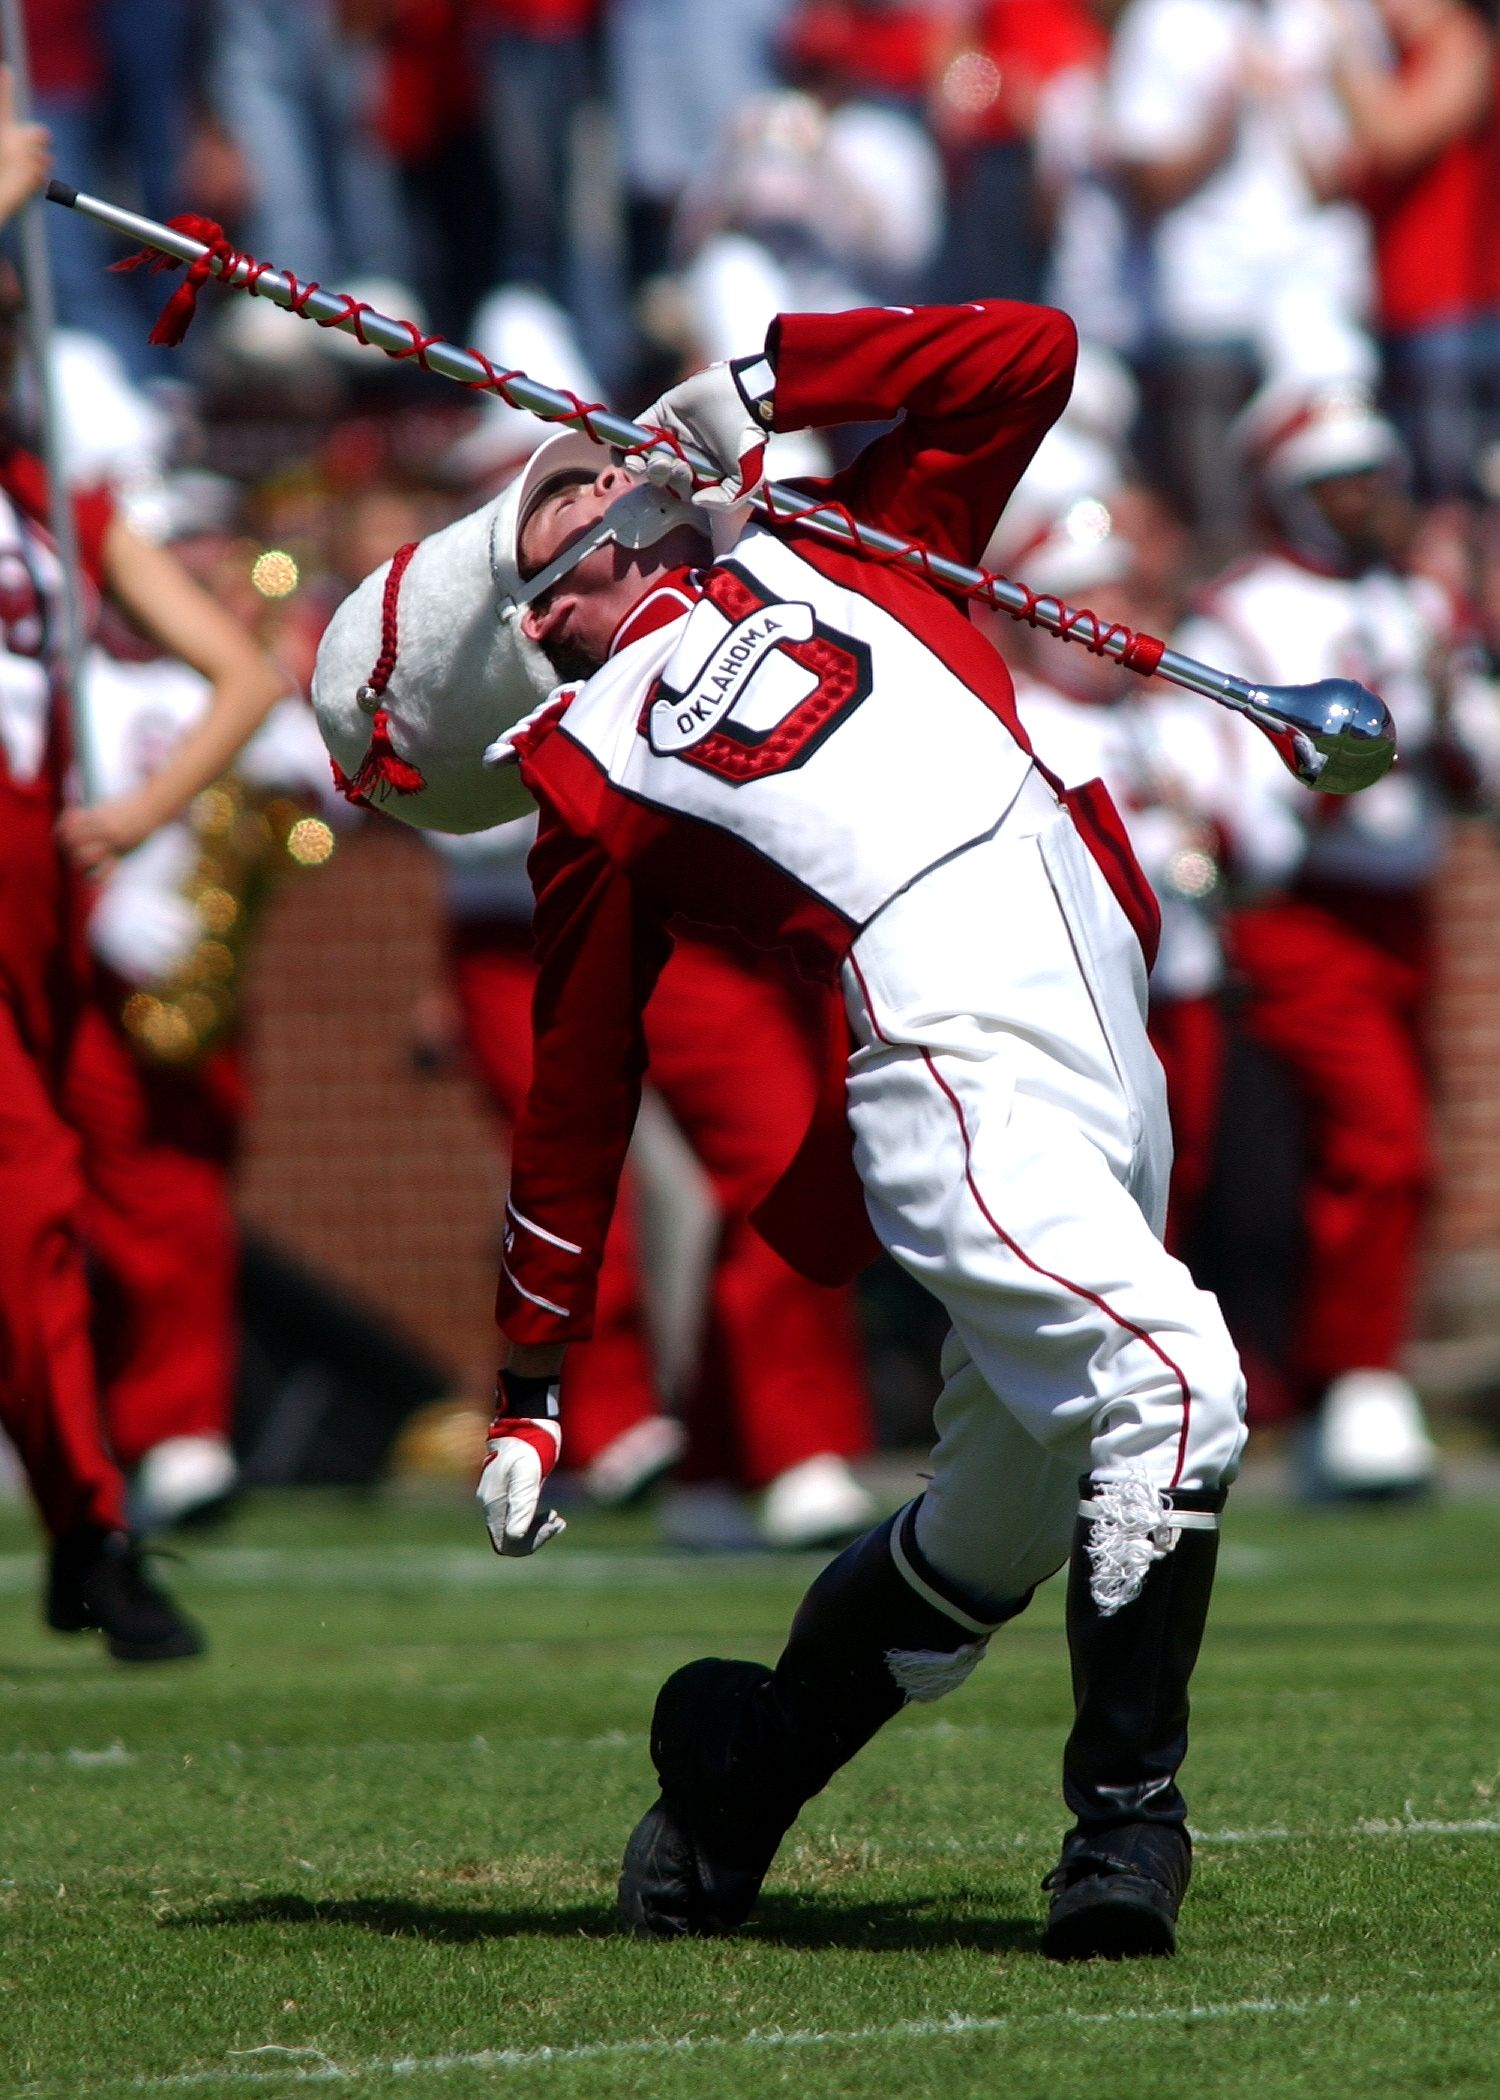 The Pride of Oklahoma Marching Band (My favorite part of